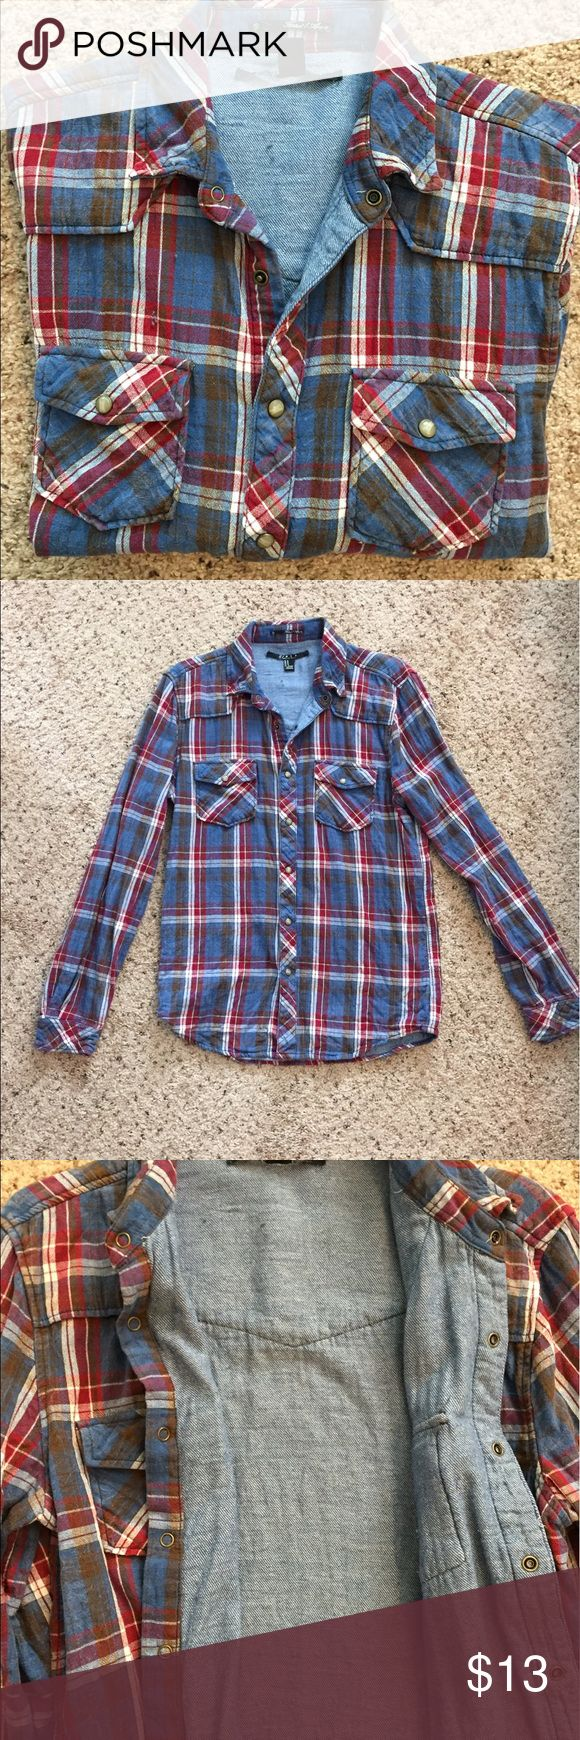 Men's plaid button down long sleeve shirt M Men's forever 21 denim plaid button down shirt. Western style with snap buttons. Size M fits to size but it thicker than most plaid shirts. Blue, white, burgundy, and black/gray. 21men Shirts Casual Button Down Shirts